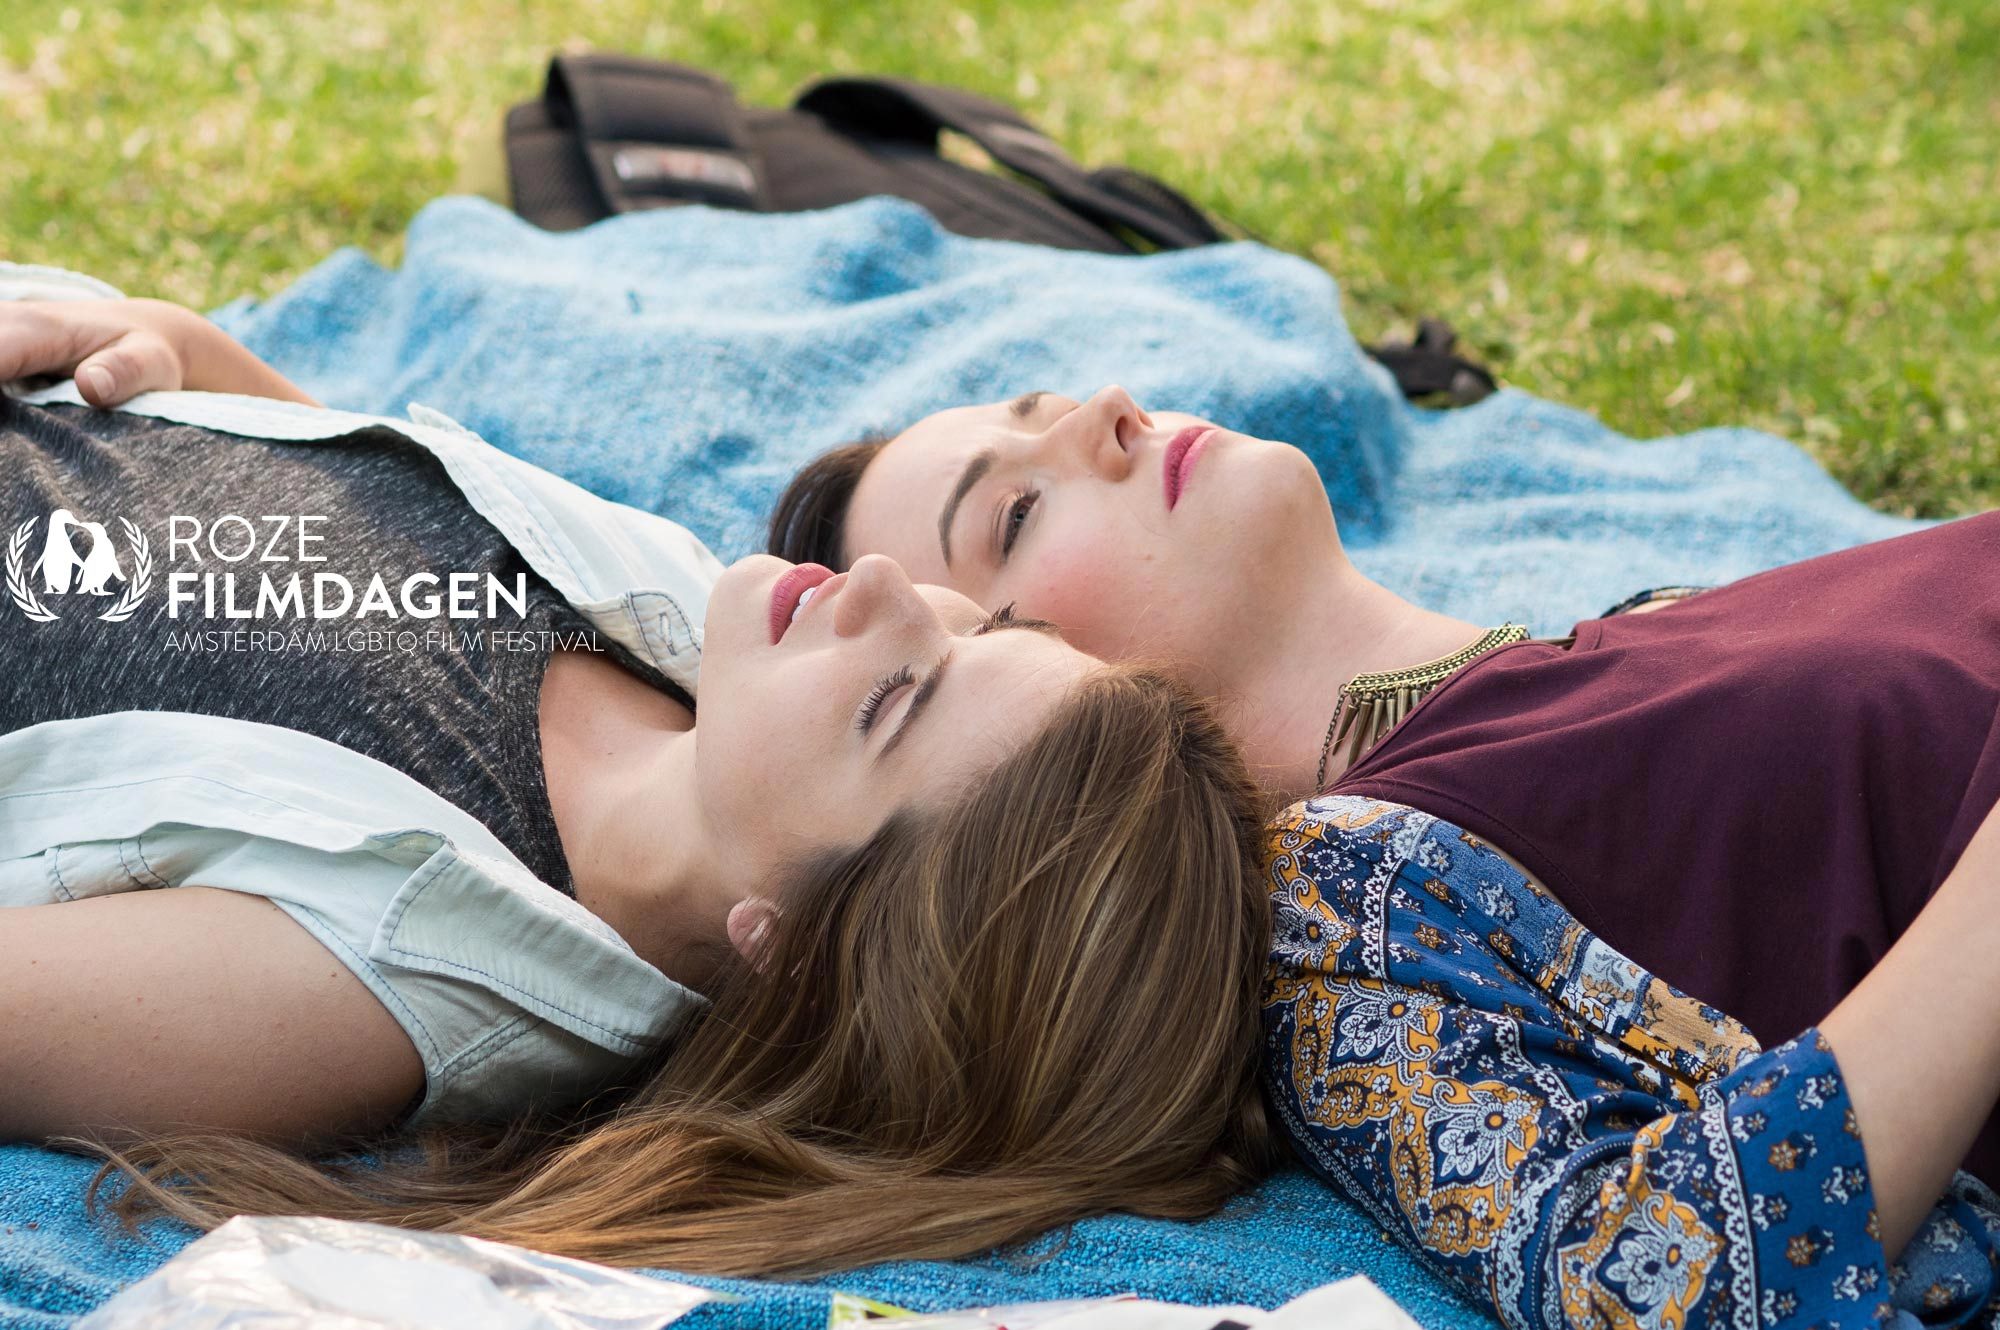 Best 5 Best Lesbian Movies Roze Filmdagen Amsterdam 2017 including 5 mixed movies during LGBTQ Film Festival